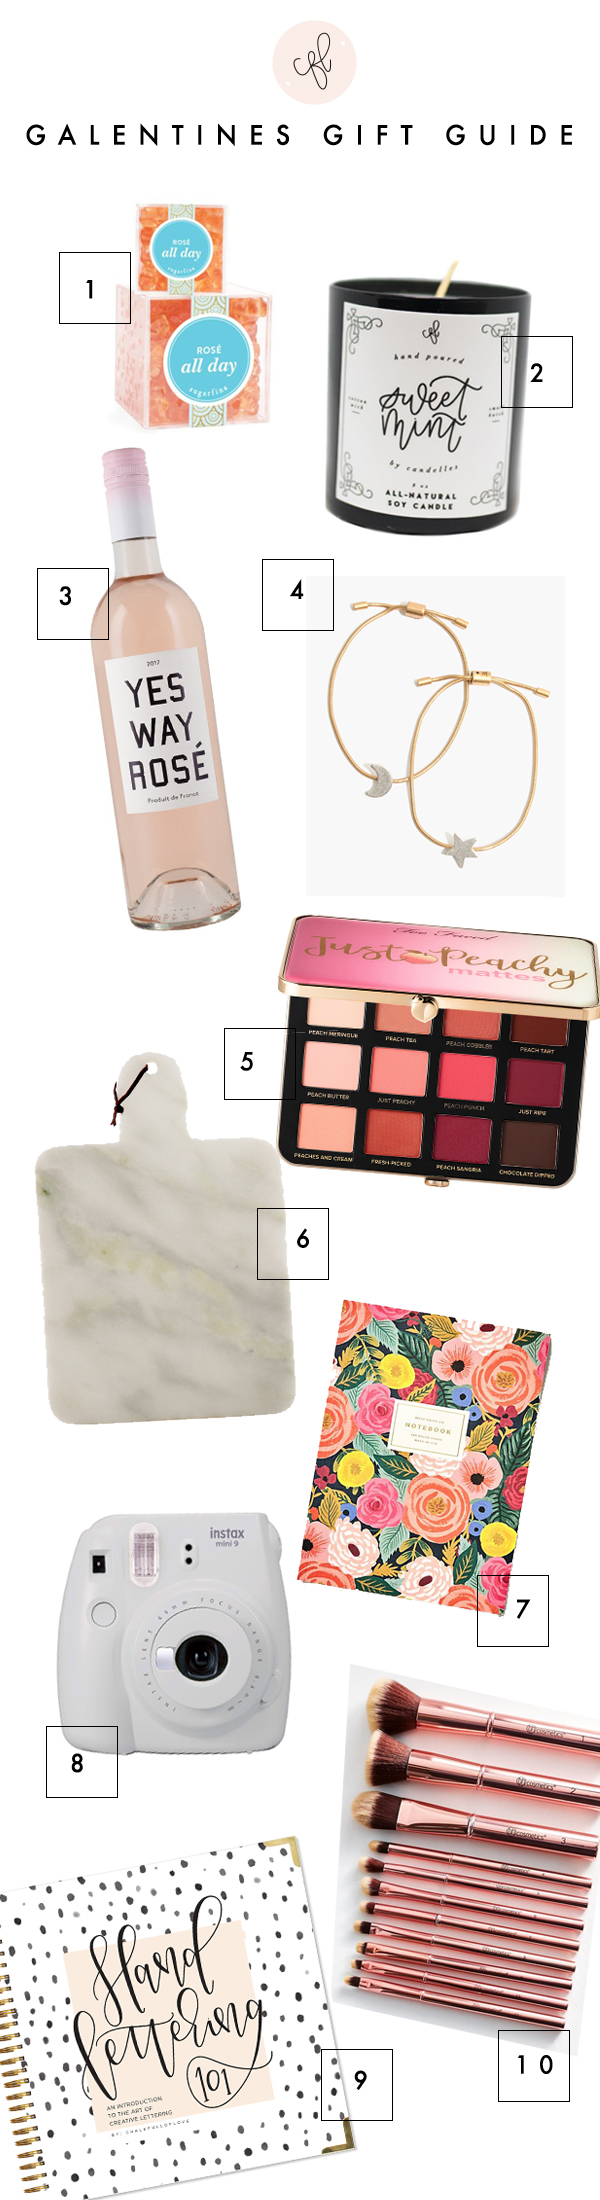 Galentines Gift Guide